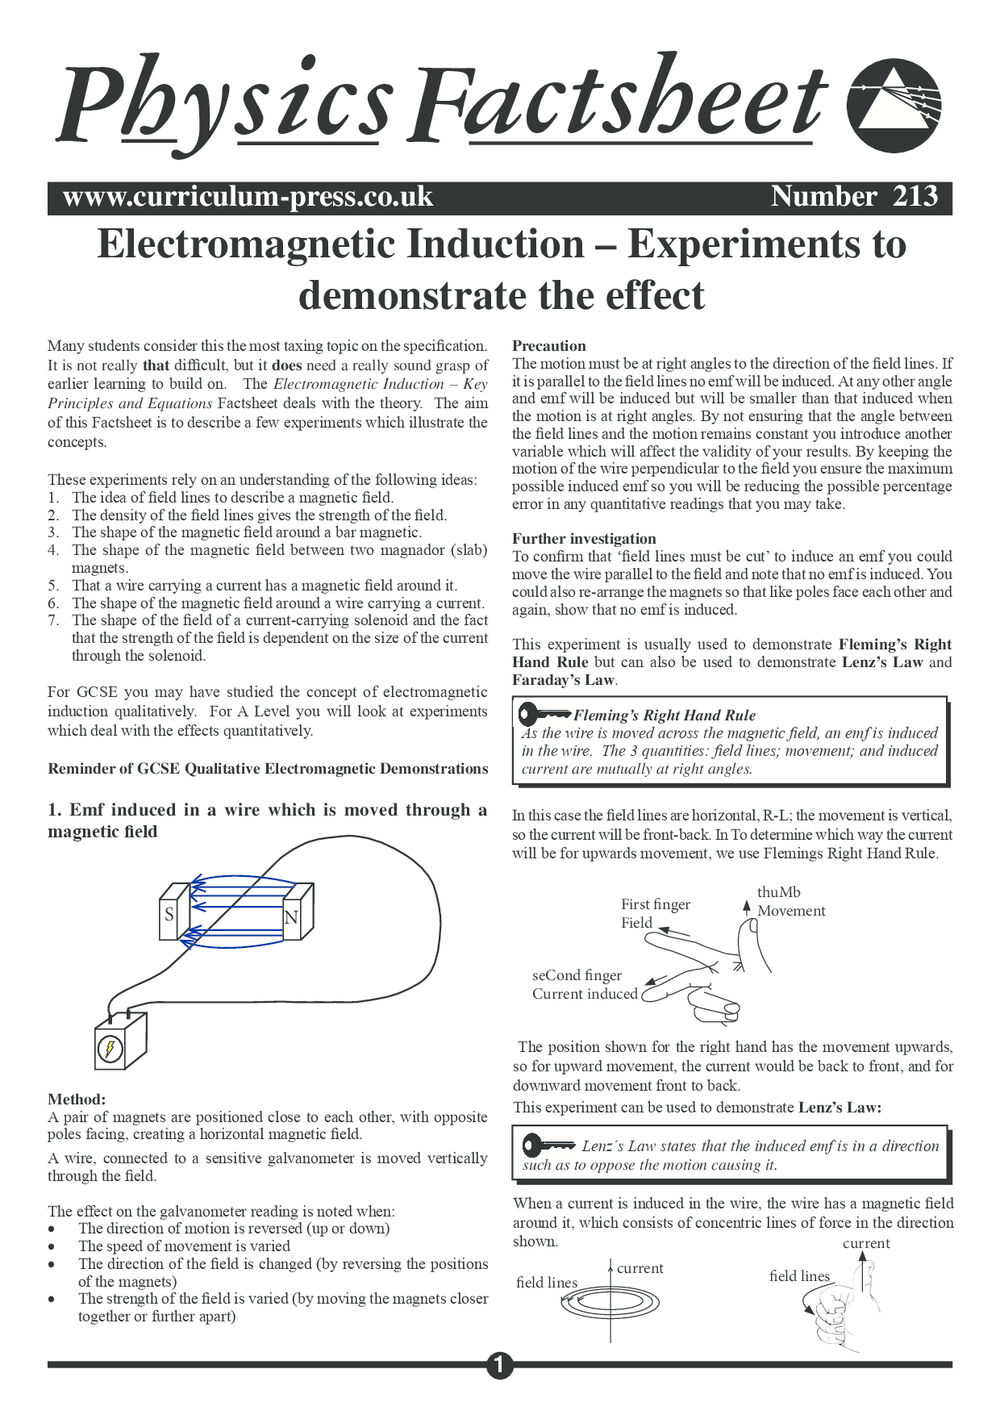 Electromagnetic Induction Experiments - Curriculum Press